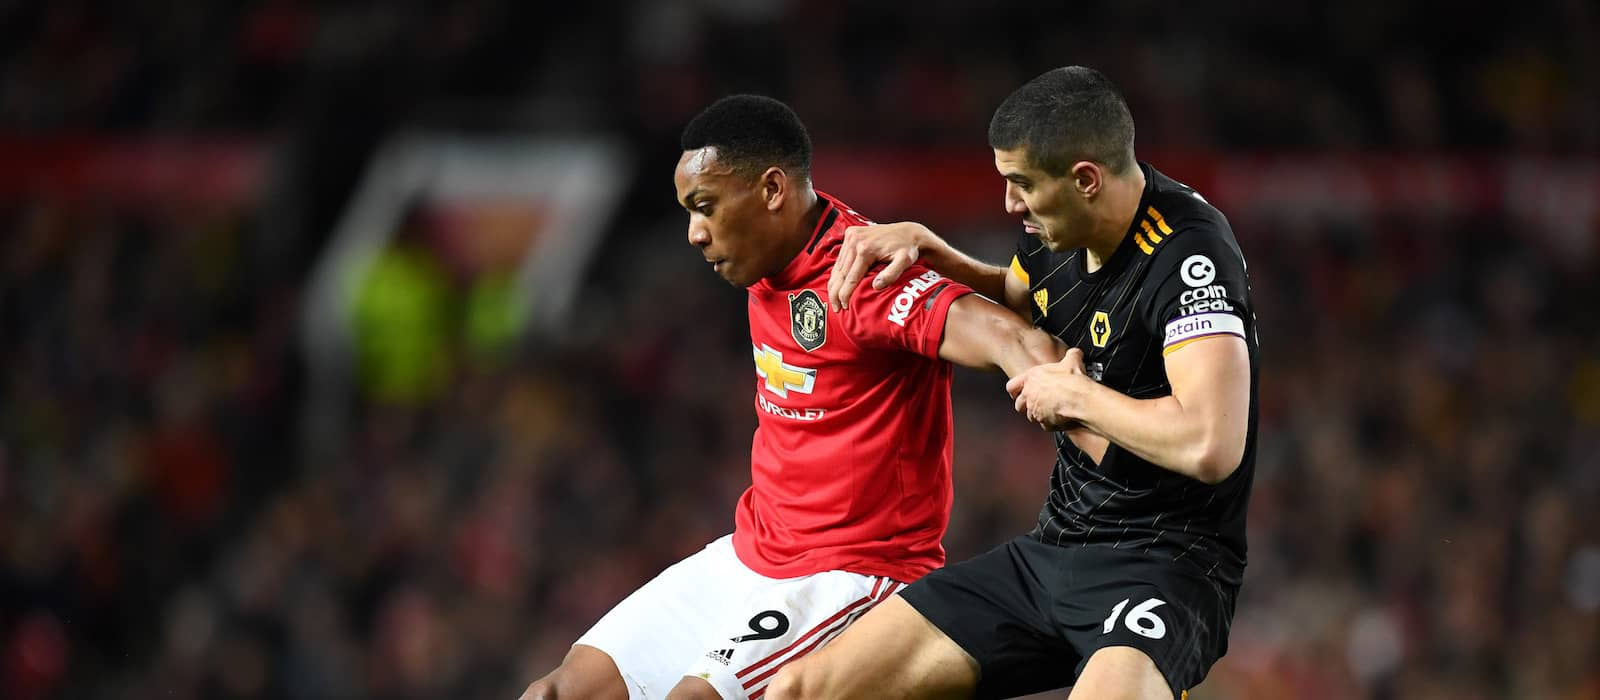 No cutting edge as Manchester United fail to penetrate Wolverhampton Wanderers